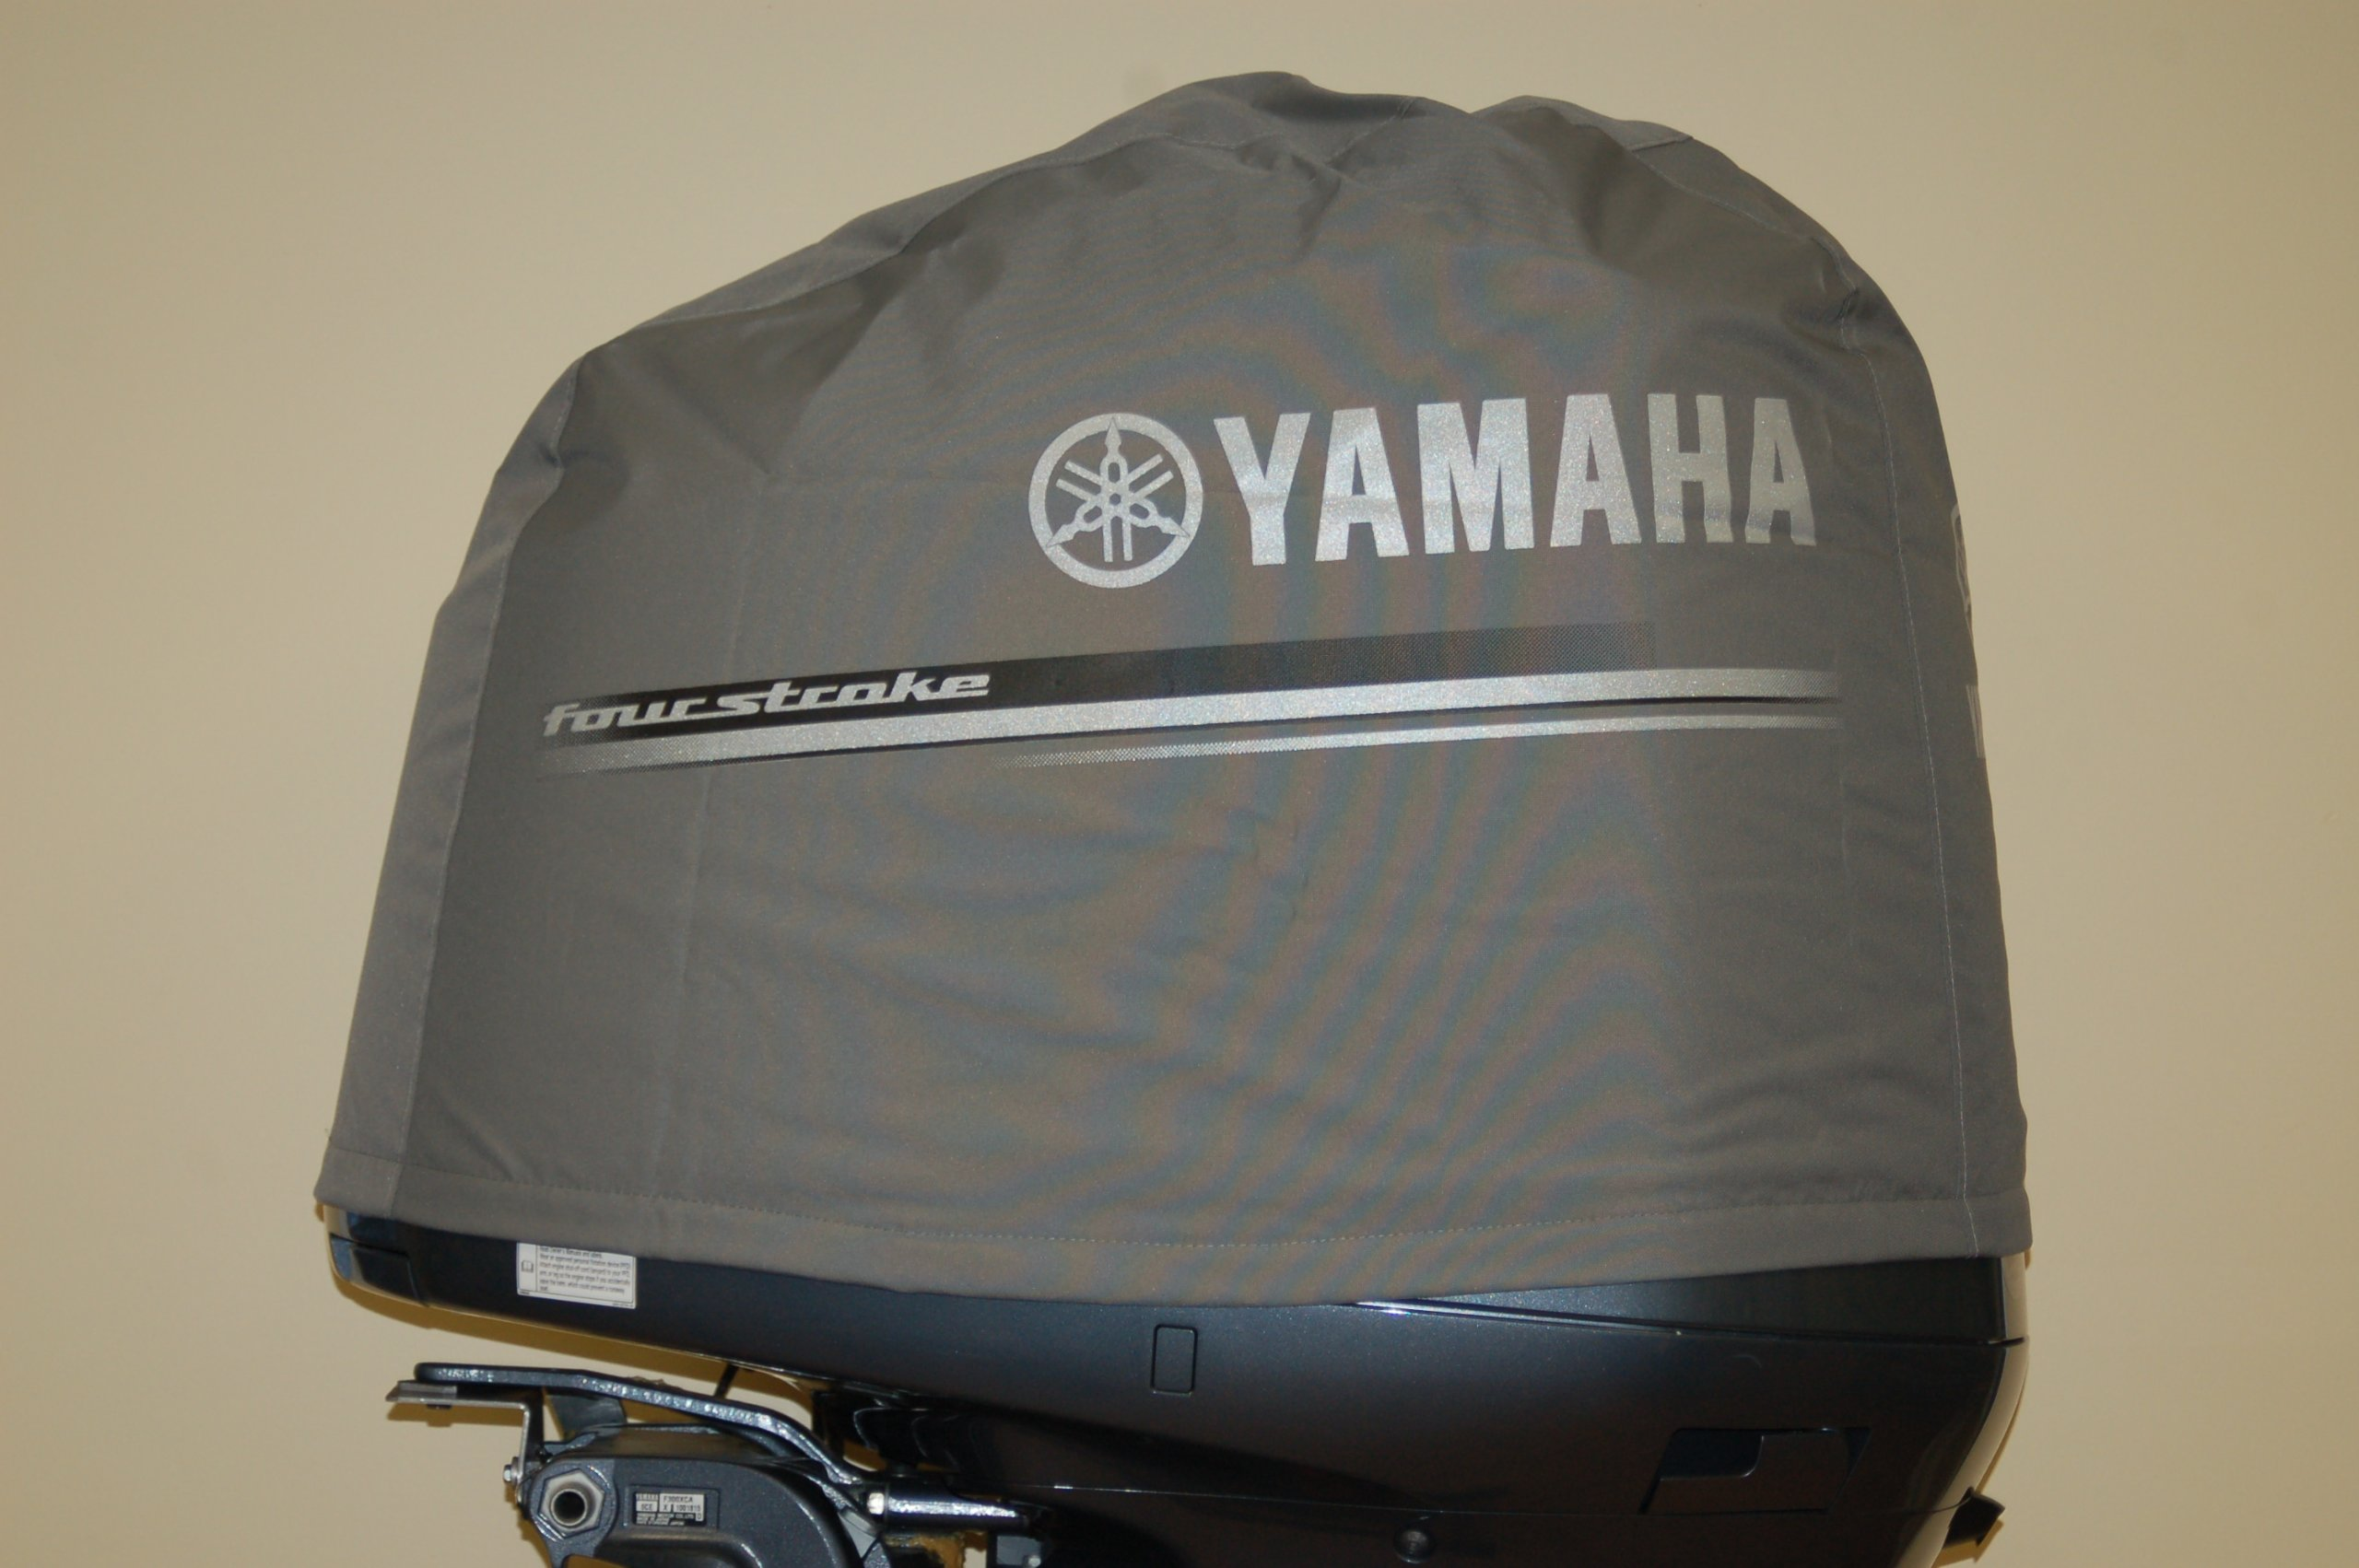 Deluxe Yamaha Outboard F200 and F225 Motor Cover by Yamaha